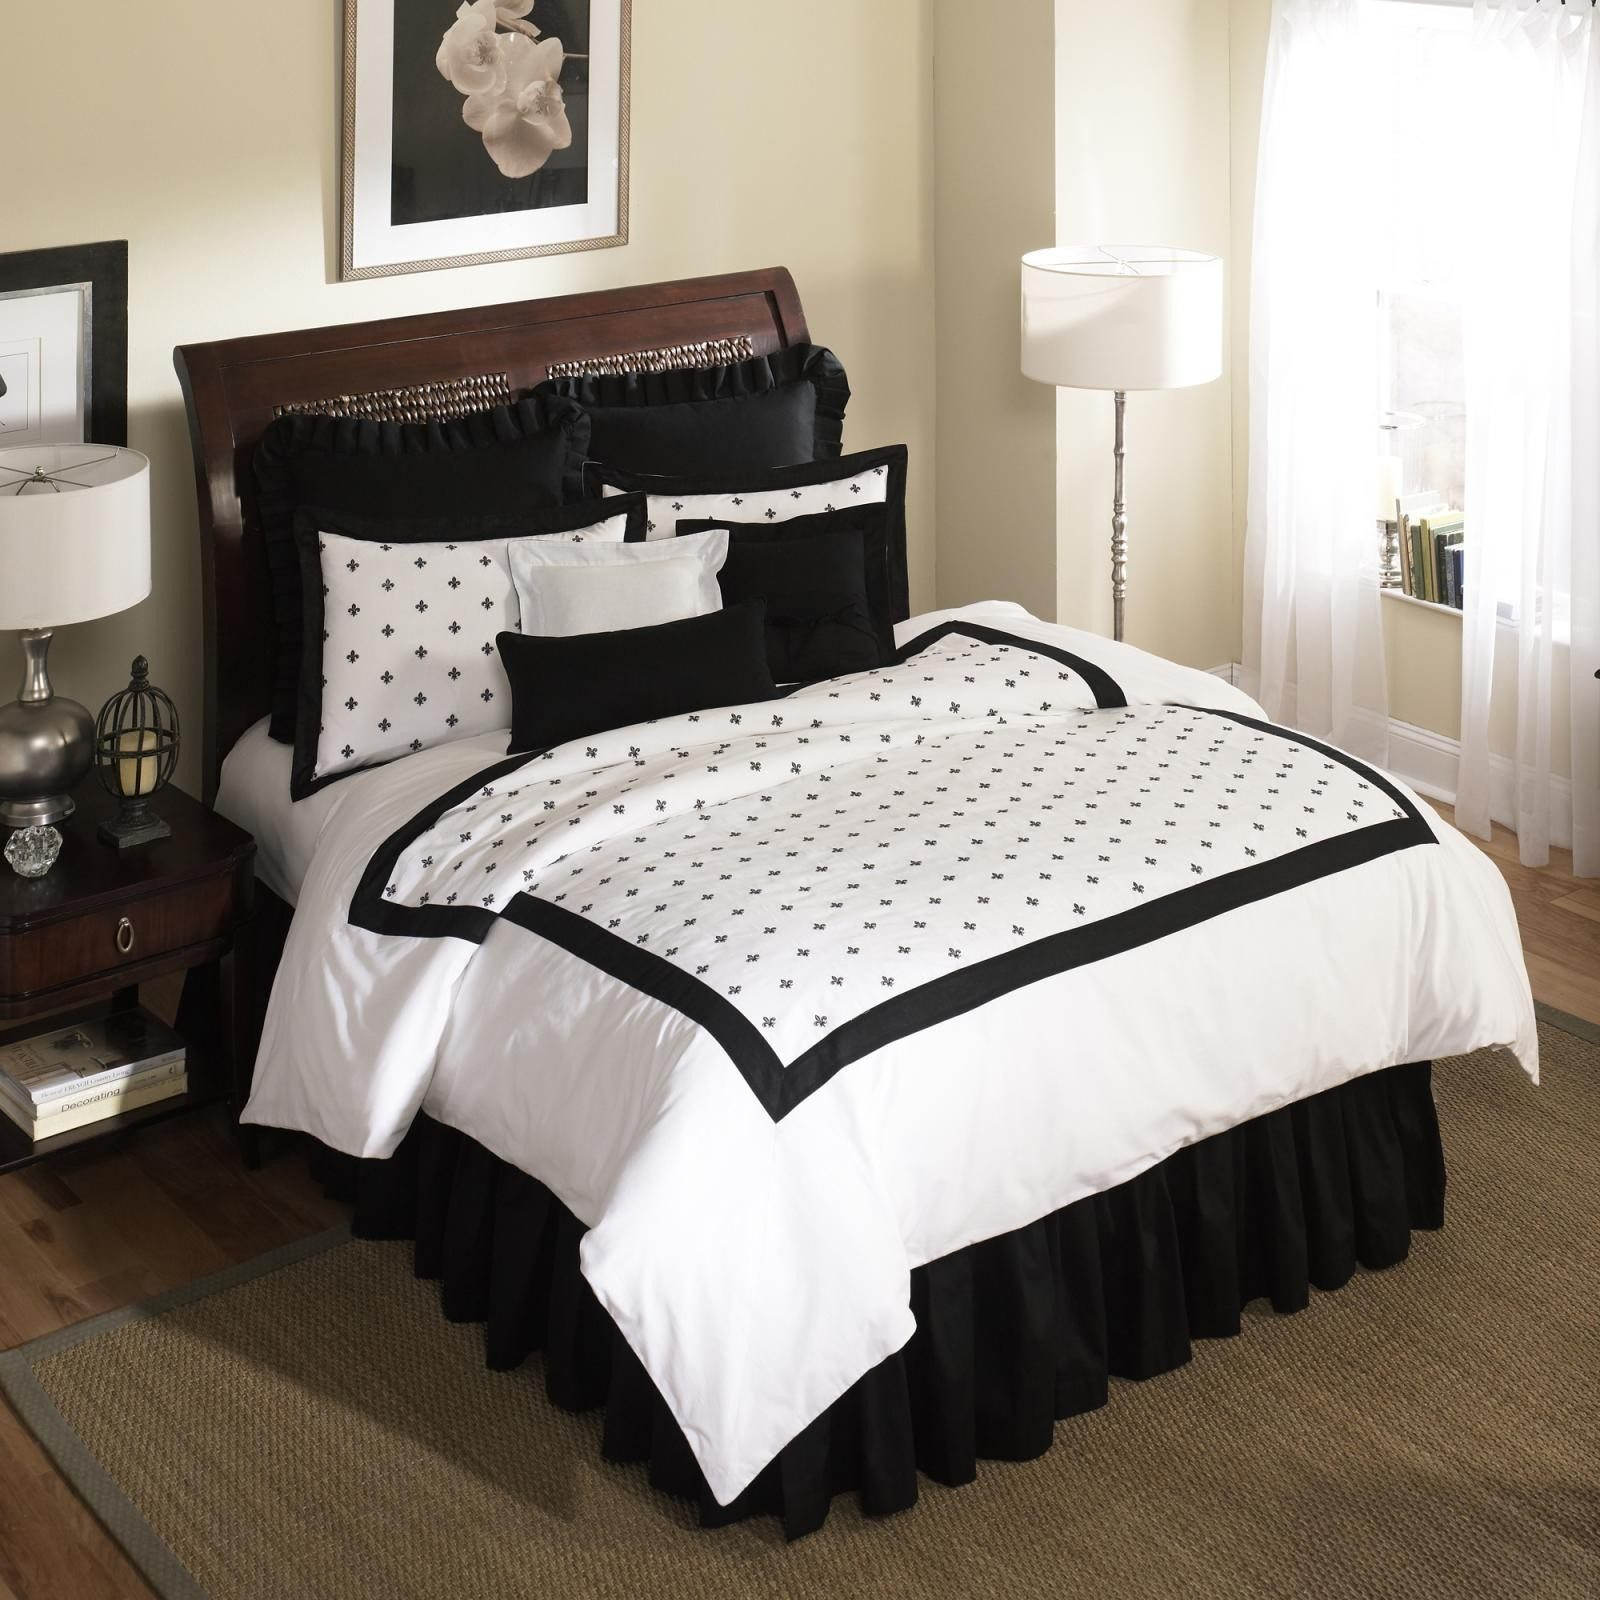 Bed Skirts Queen | Tailored Bed Skirts Queen | Split Corner Bed Skirt